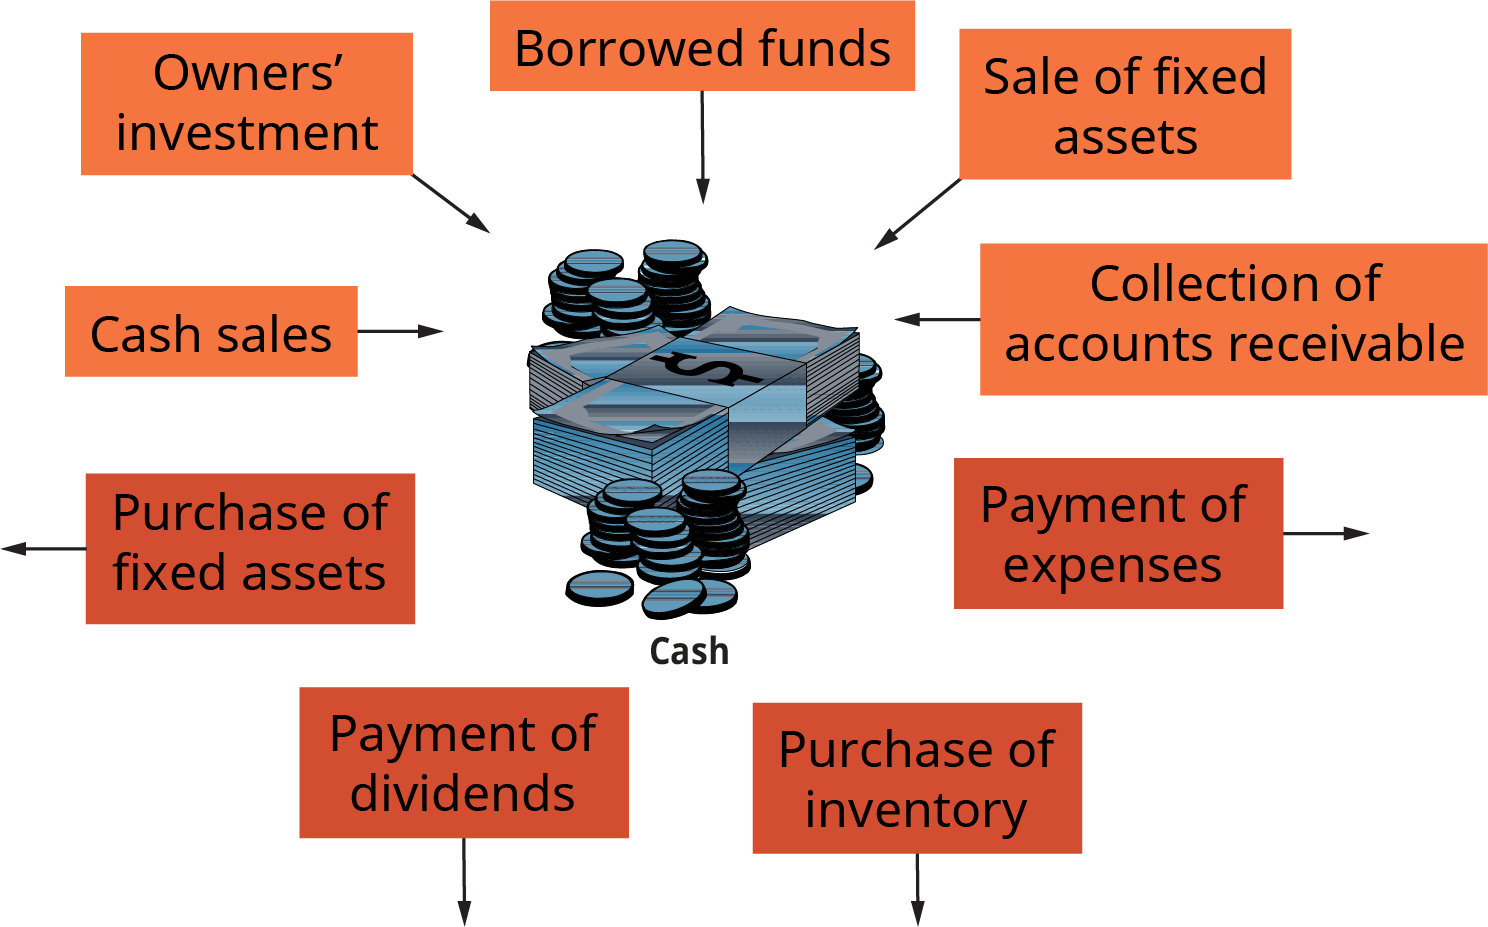 There is a pile of cash shown at the center of the illustration. The cash is surrounded by labeled boxes; there are arrows either point from the box to the cash, or from the box, away from the cash. The labeled boxes pointing to the cash are as follows; cash sales, and owner's investment, and borrowed funds, and sale of fixed assets, and collection of accounts receivable. The labeled boxes pointing away from the cash are as follows; purchase of fixed assets, and payment of dividends, and purchase of inventory, and payment of expenses.